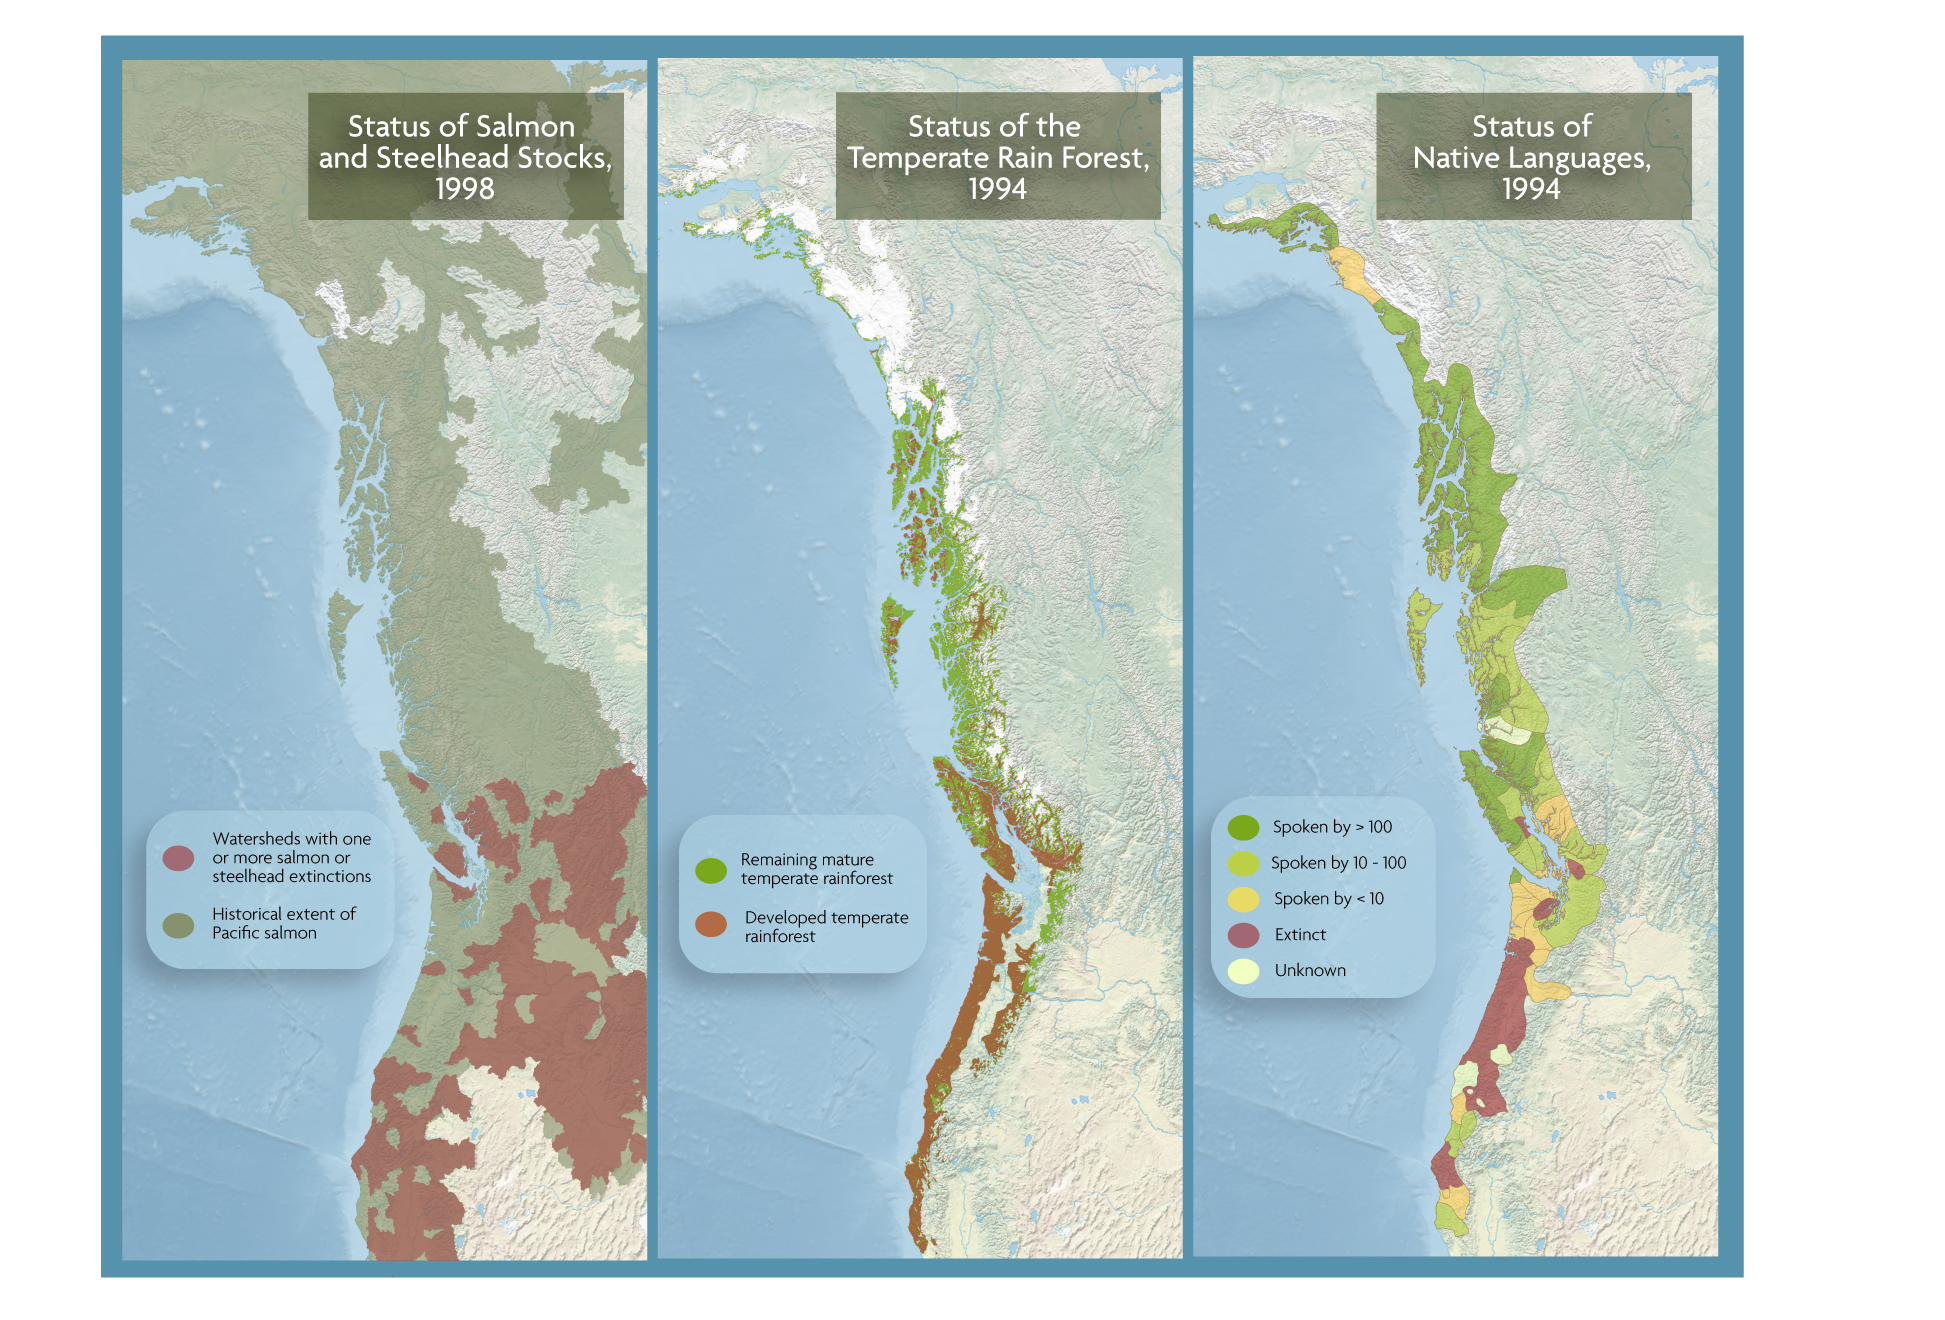 1998—People, Forests, Salmon:  Placing Ecotrust's maps of native language loss, forest cover loss and salmon species loss shows an unmistakable pattern of interconnectedness between humans and ecosystems.  In 1998, we also created the first-ever comprehensive view of North Pacific salmon stocks brought together data from a bevy of public agencies, and tracked salmon health across all of the region's medium-sized watersheds.